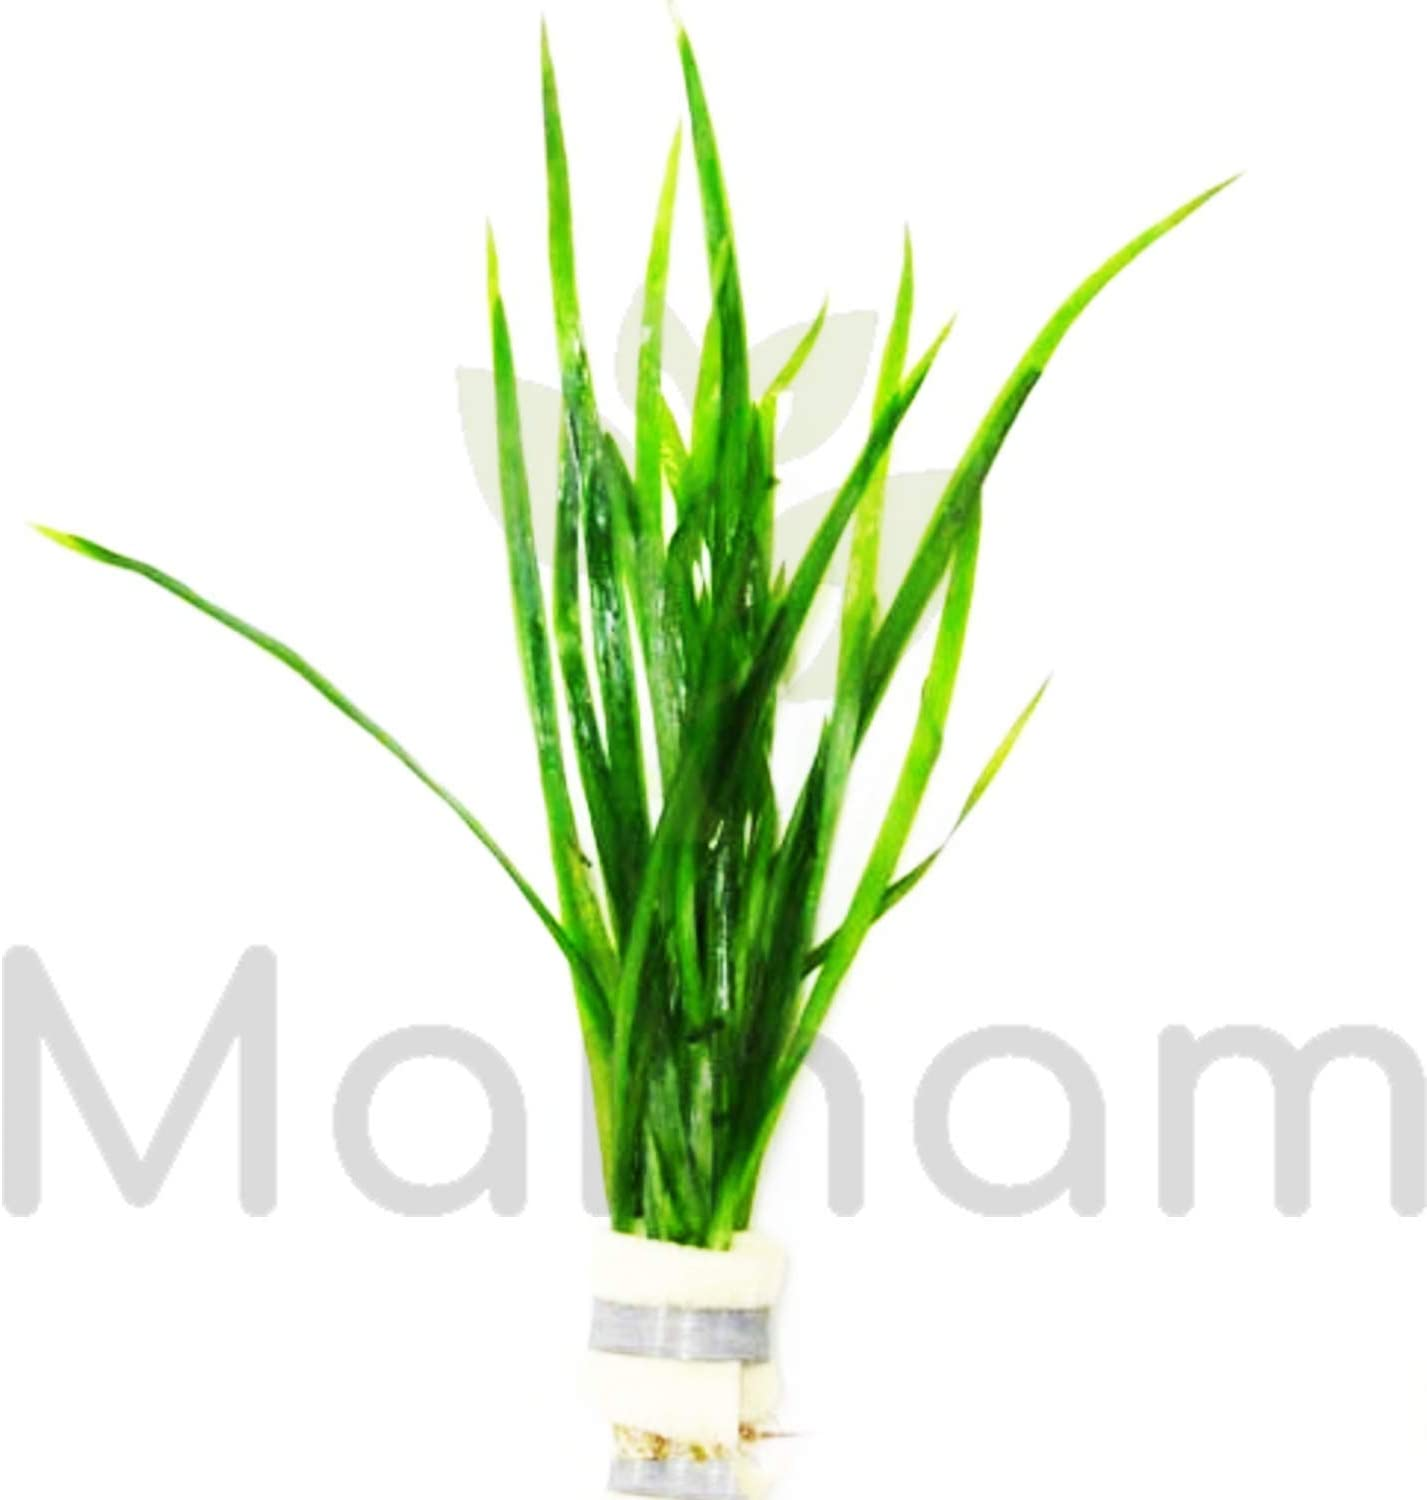 Mainam Jungle Vallisneria Spiralis Rooted Easy Background Live Aquarium Plants Decorations 3 DAYS LIVE GUARANTEED By